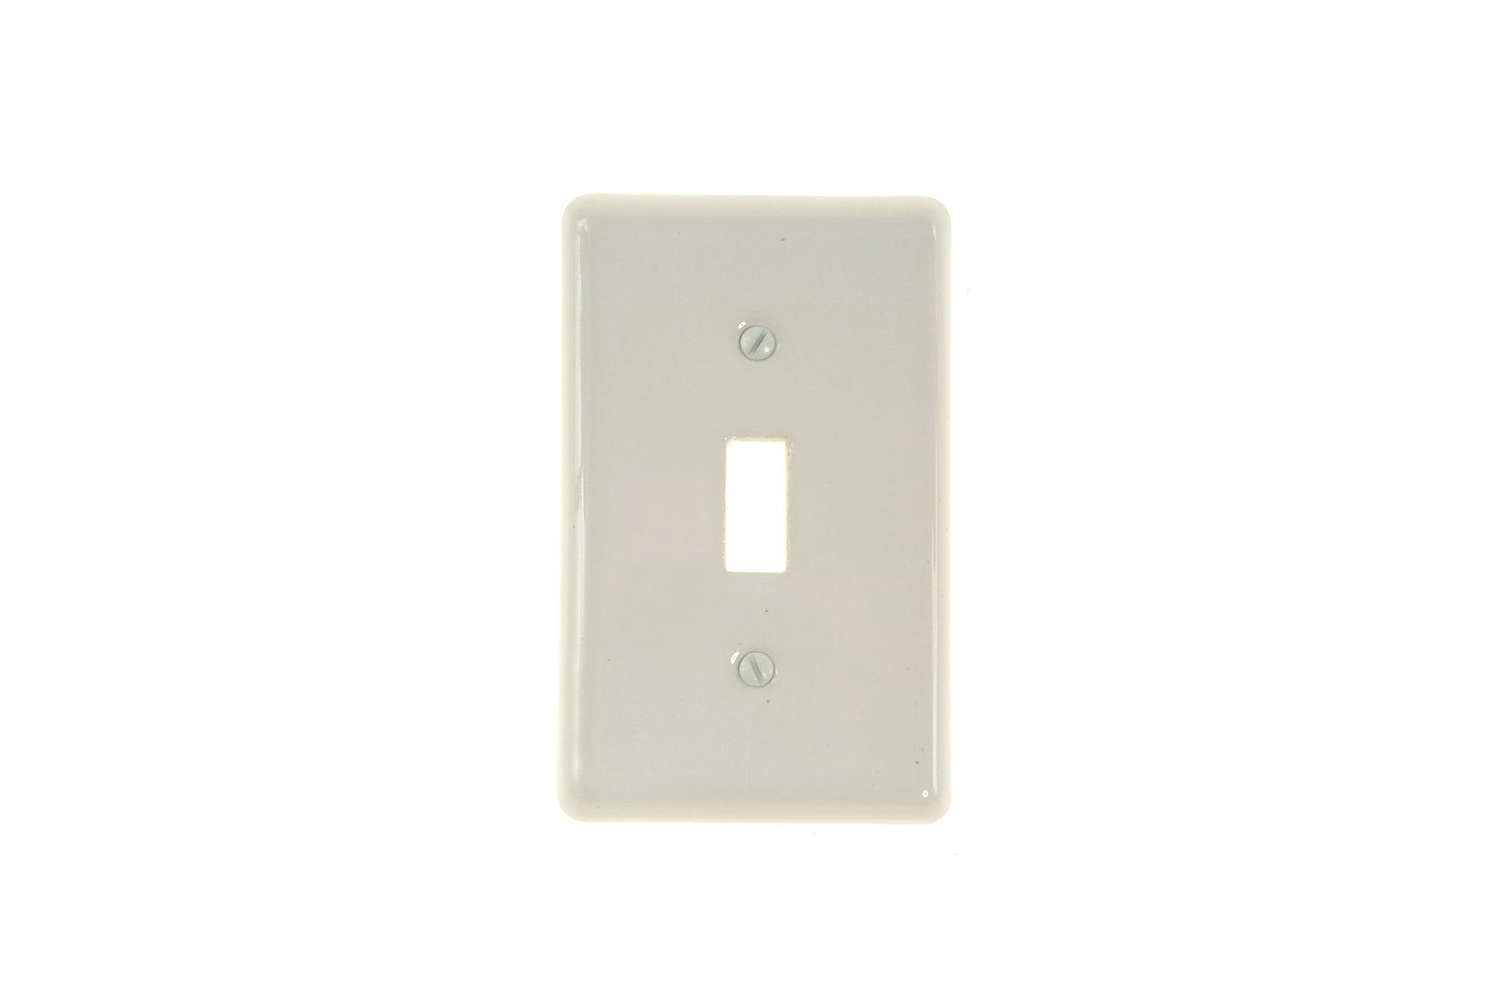 The Amerelle Nouveau Ceramic Toggle Wall Plate in White is $4.84 at Home Depot.